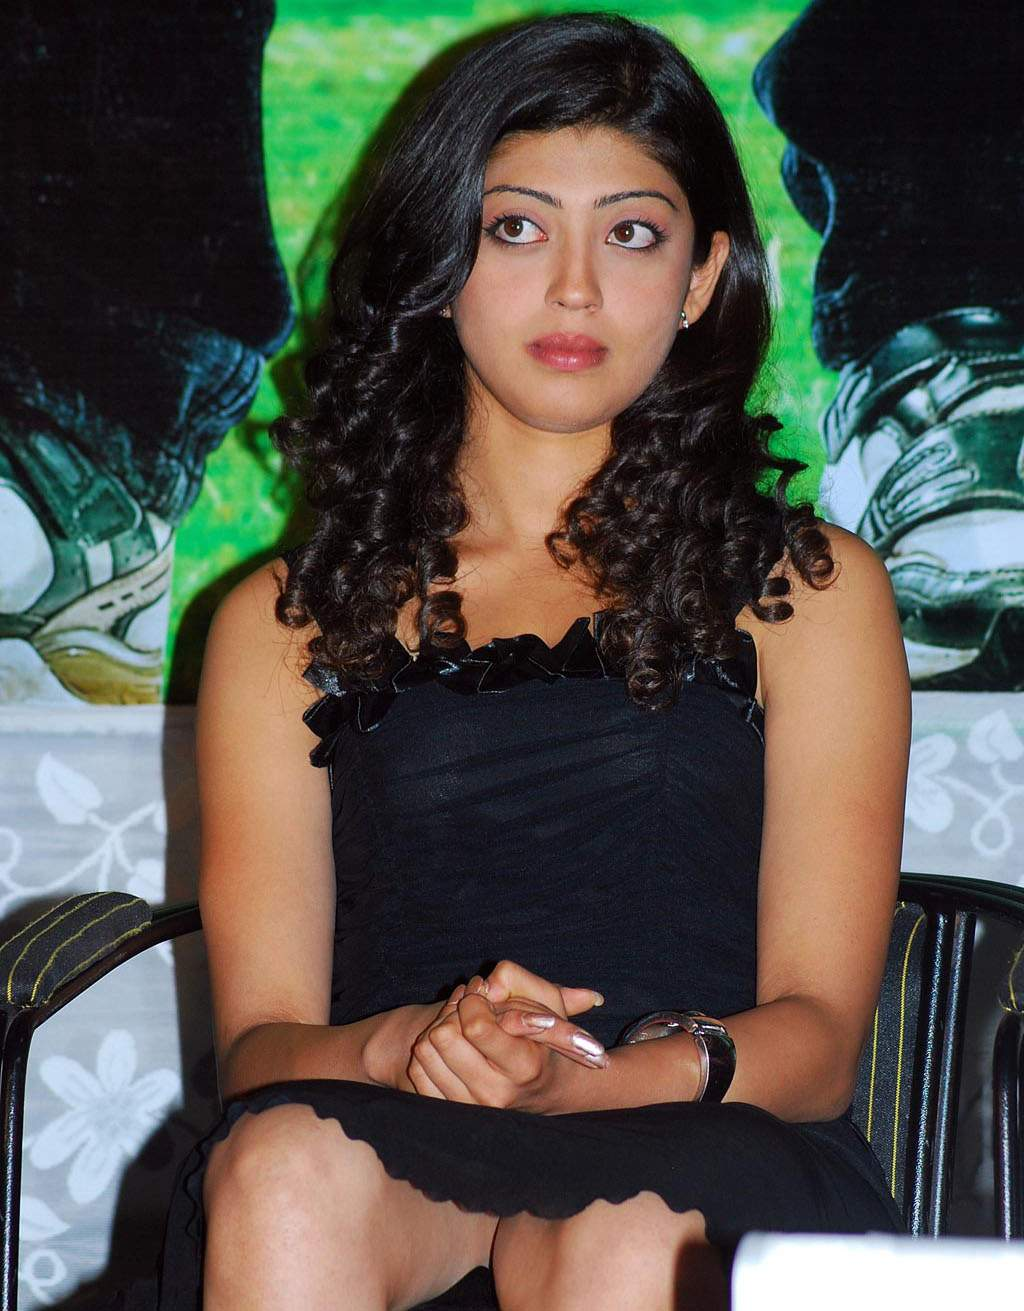 Telugu Actress Pranitha Hot Photos Gallery - Indian Film -4961